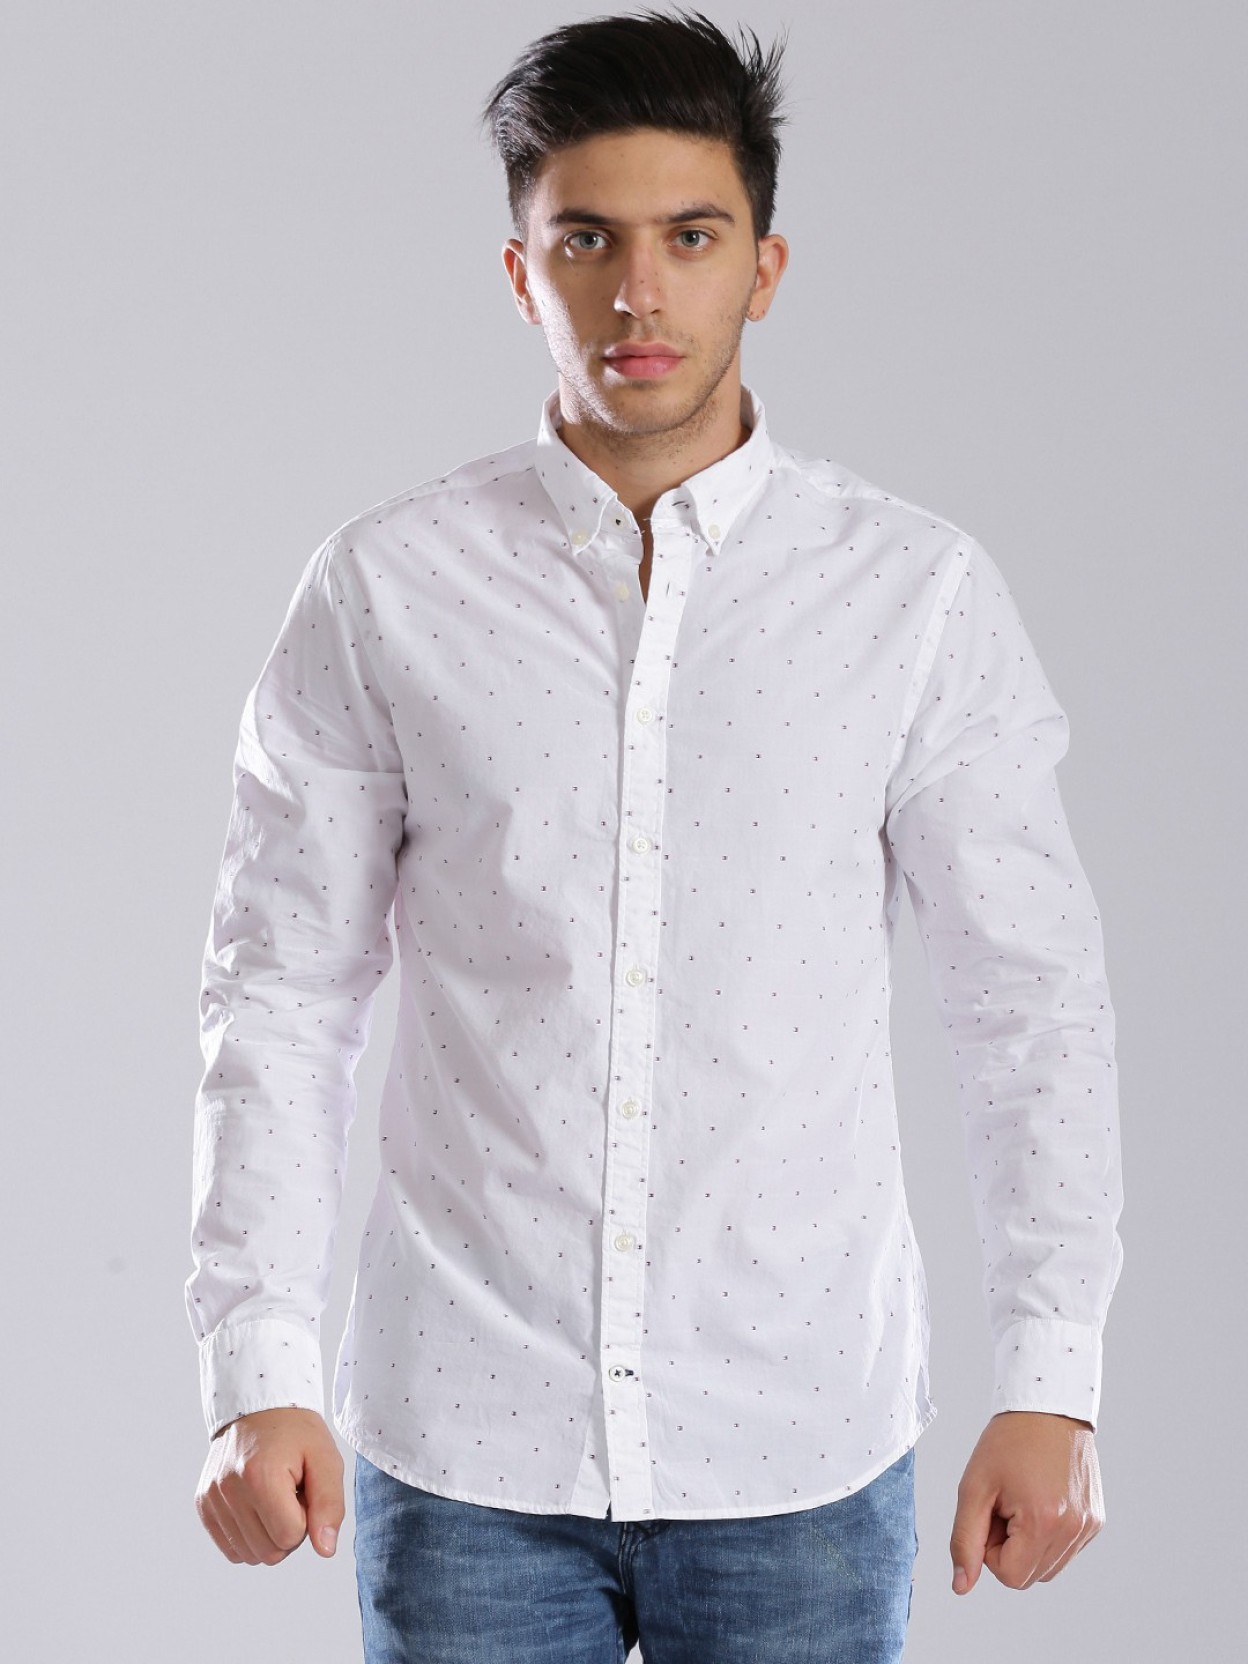 Tommy Hilfiger Mens Polka Print Casual Shirt Buy White Tommy